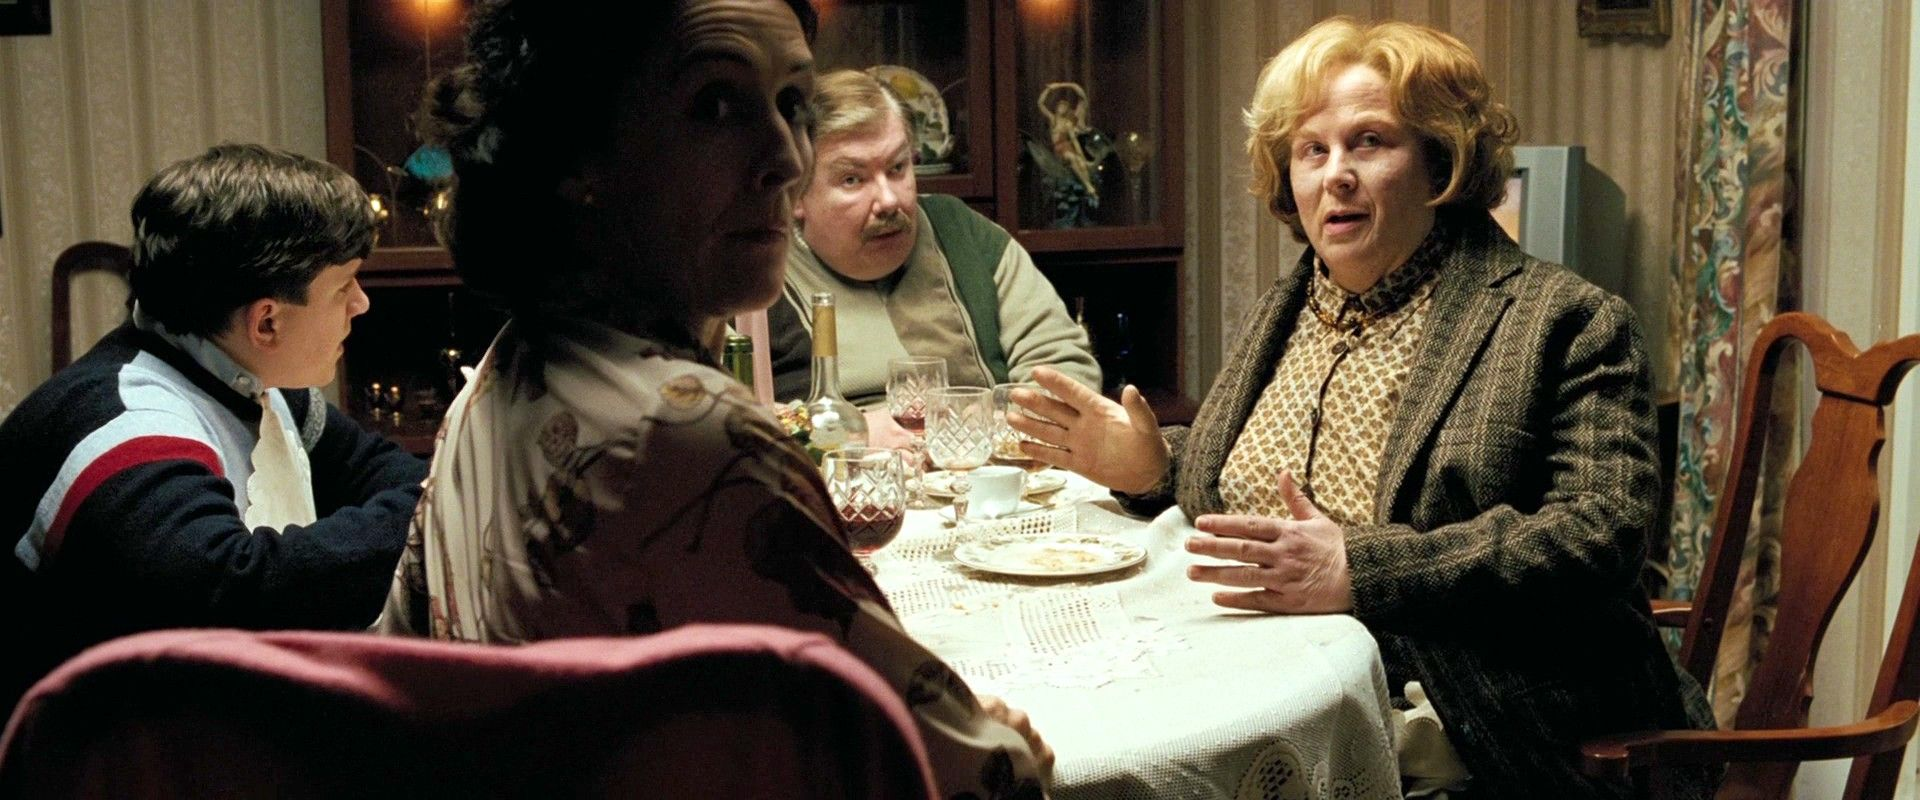 Marge Dursley (Pam Ferris) is Vernon's sister, who is similarly neckless  and unattractive. Harry has always had to refer to her as 'Aunt,' and takes  solace in t…